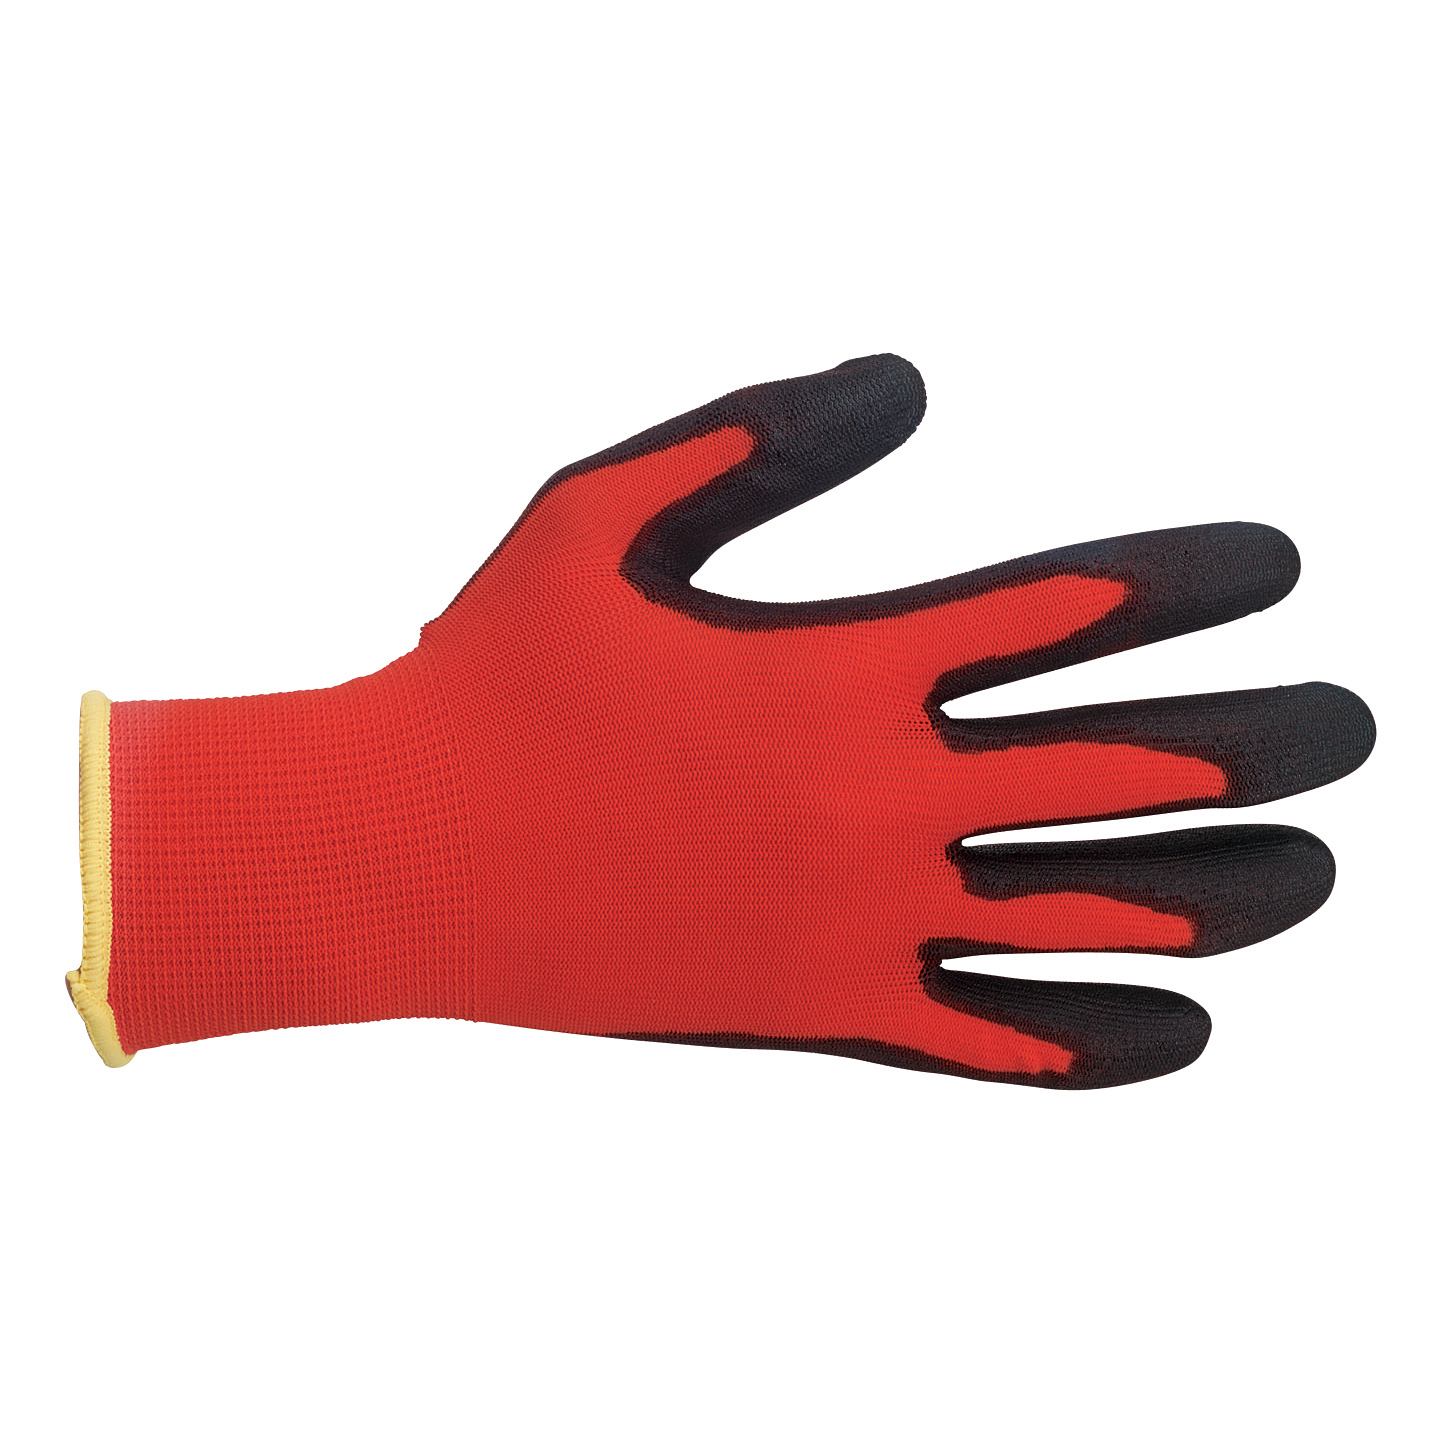 Protective gloves Polyco Safety Gloves Light-duty Level 1 PU Coated Size 9 Red/Black Pair Ref MRP/09